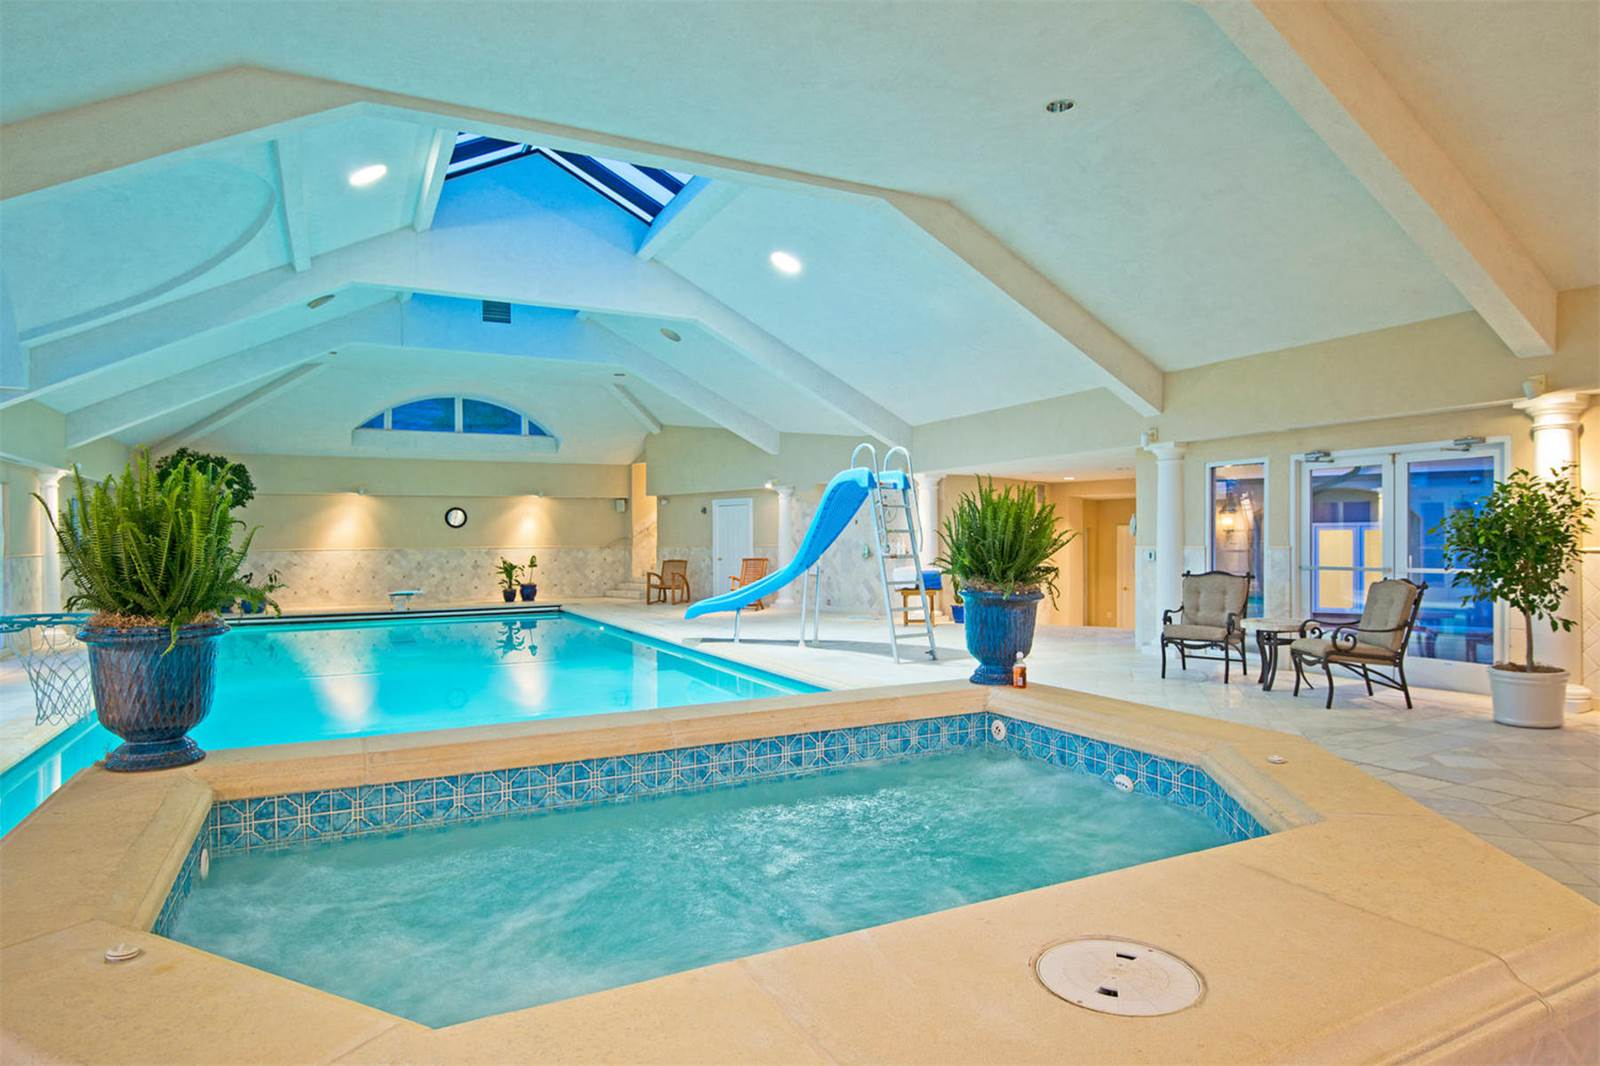 5 Houses With Indoor Pools You Can Buy Now   Summit ...